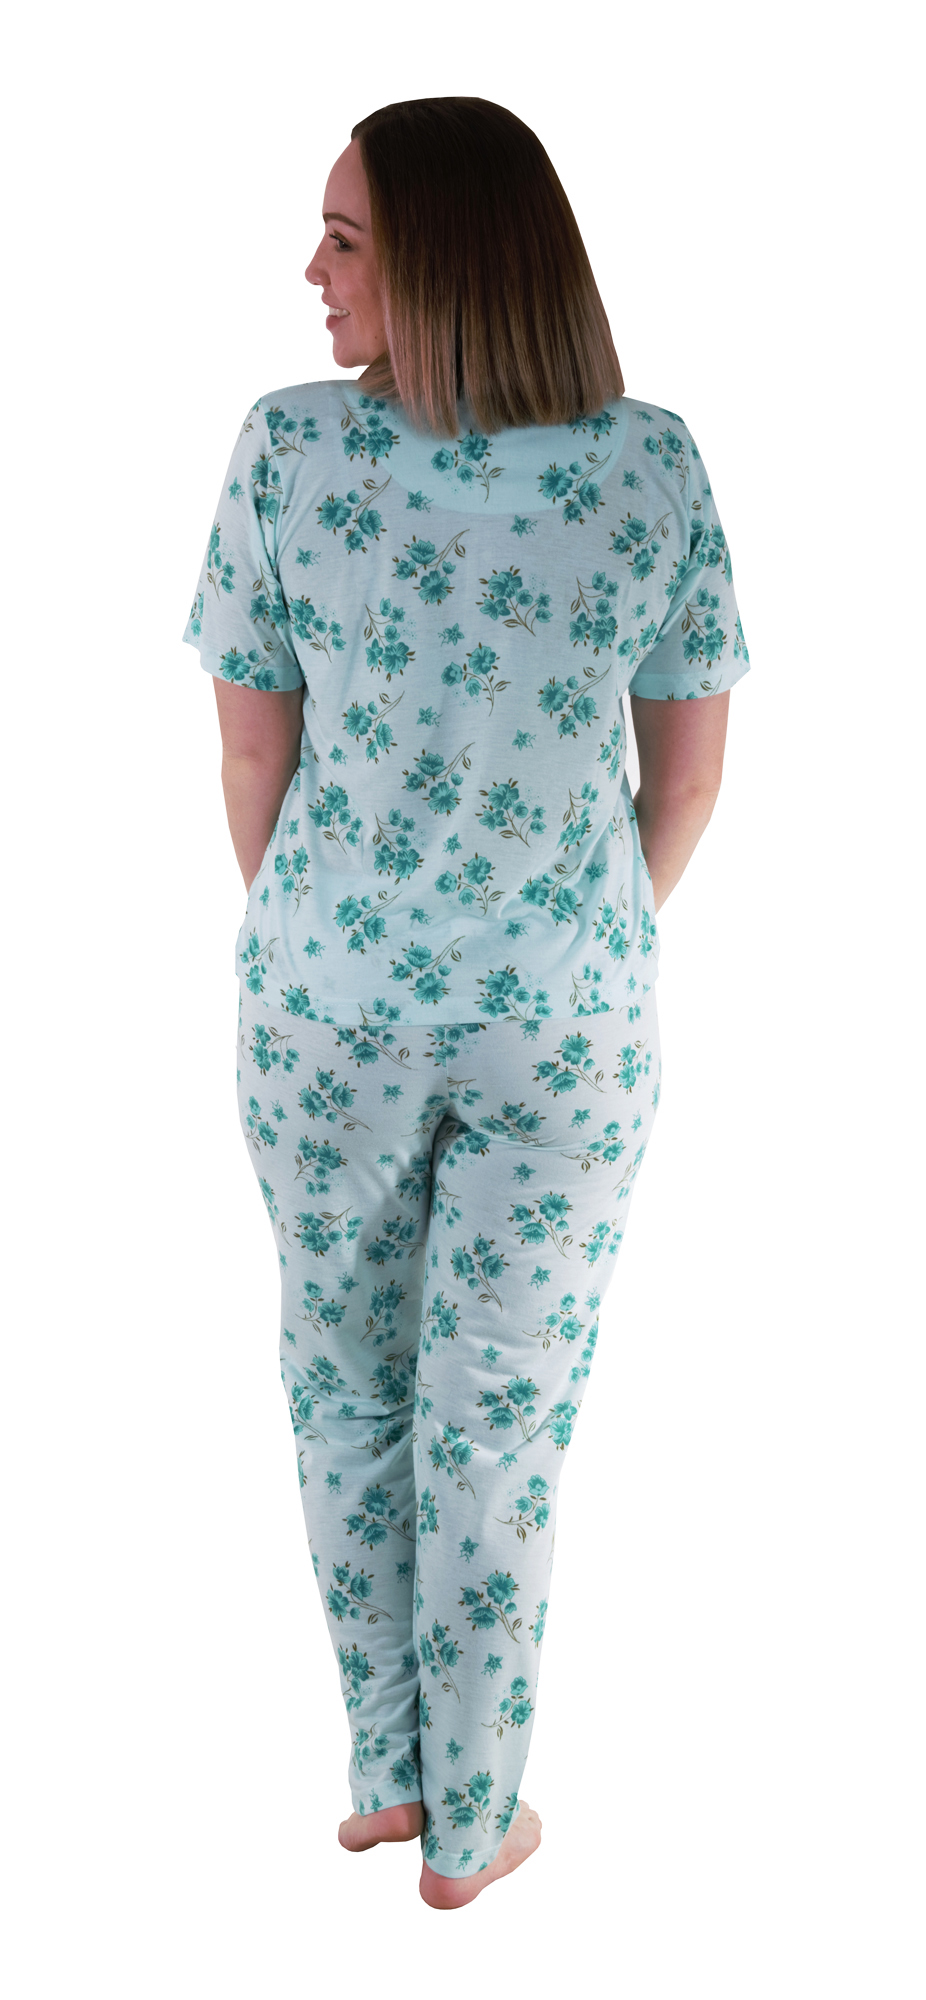 44441a131a5e i-Smalls Ladies Cotton Pyjama Set Short Sleeve Floral Printed Women ...